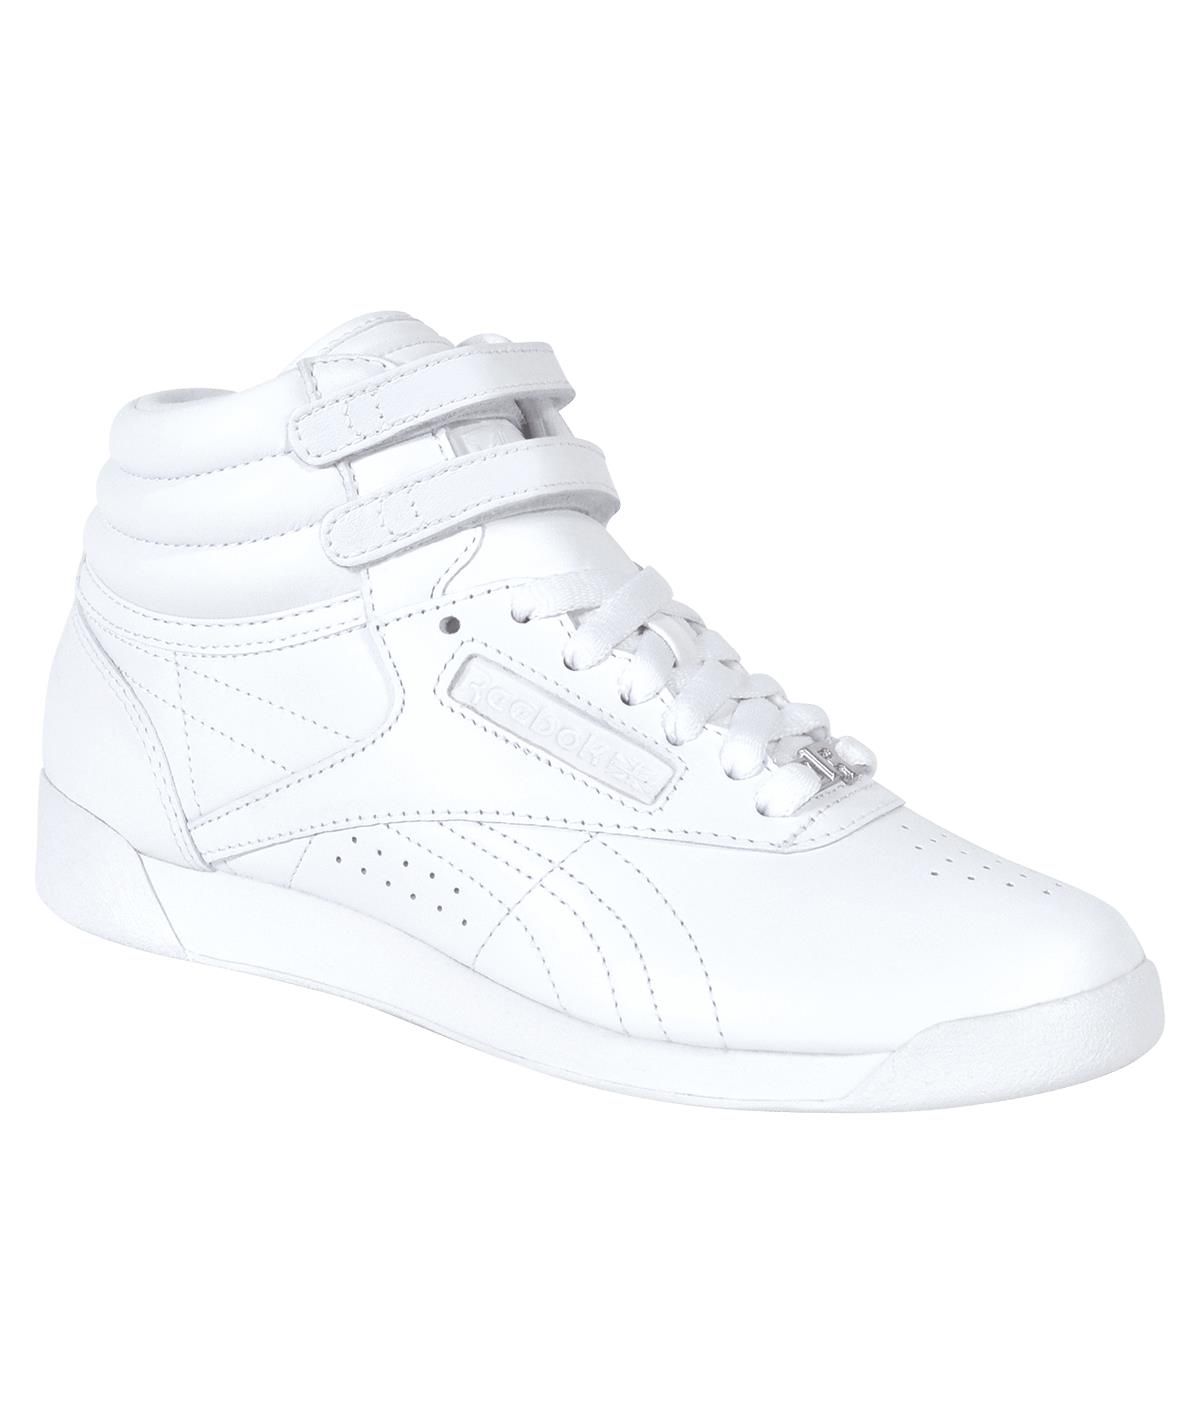 Reebok Freestyle Hi Shoe